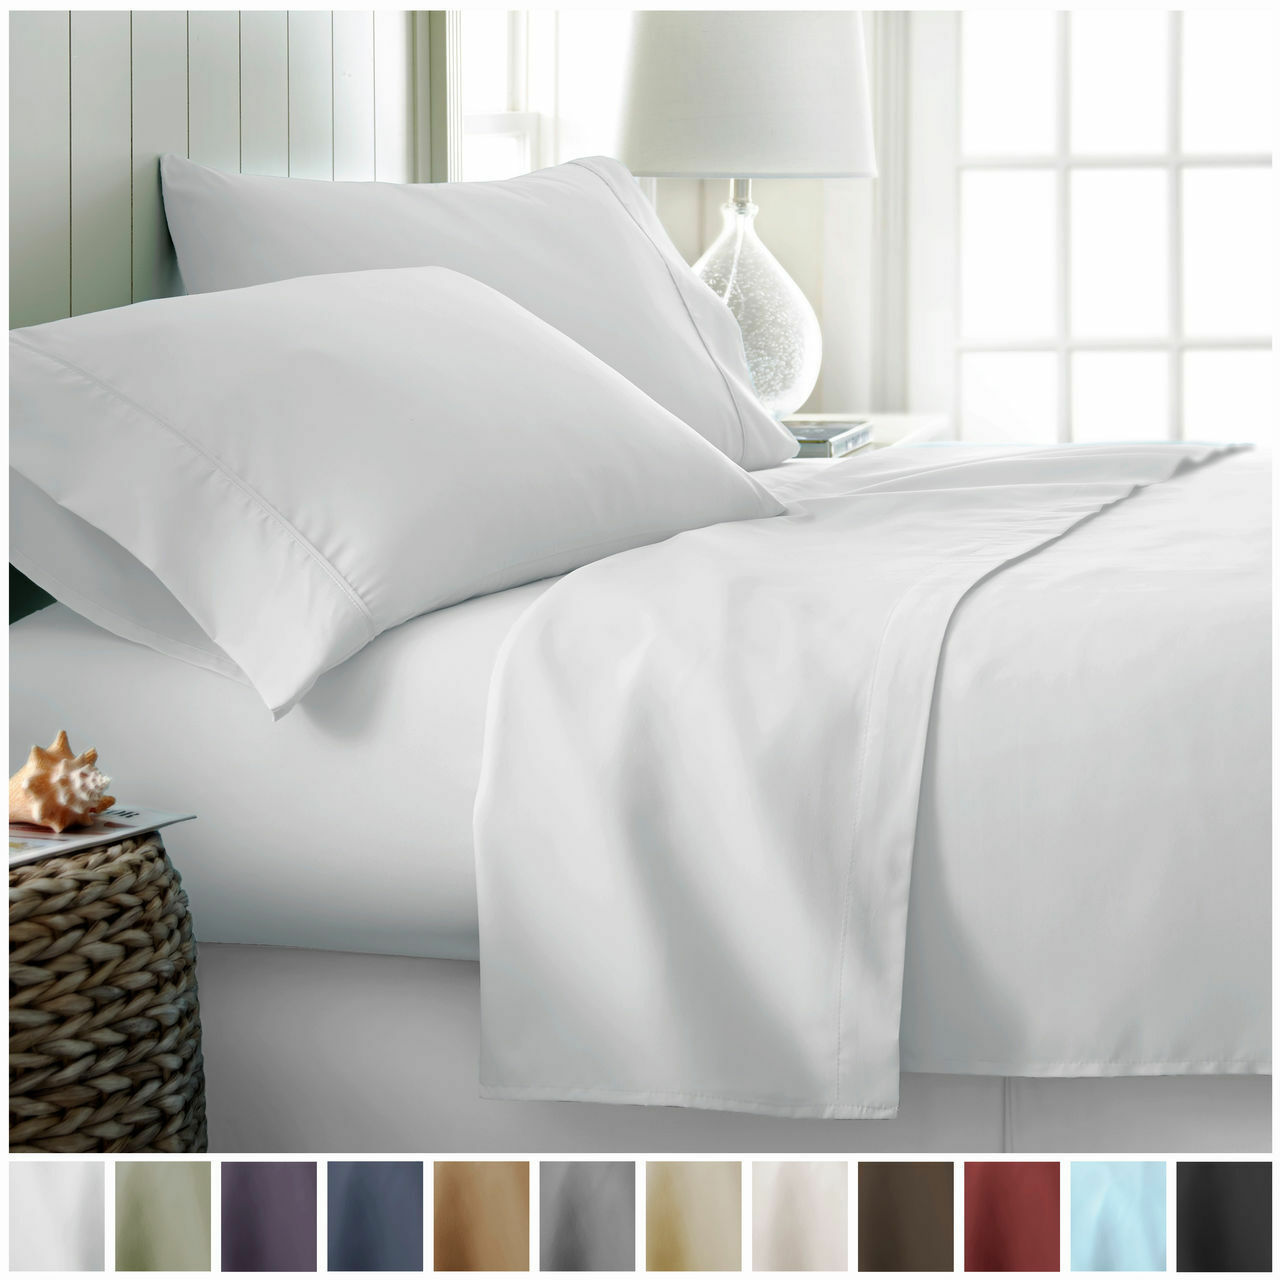 Hotel Collection Egyptian Comfort 4 Piece Deep Pocket Bed Sheet Set Full  White | EBay